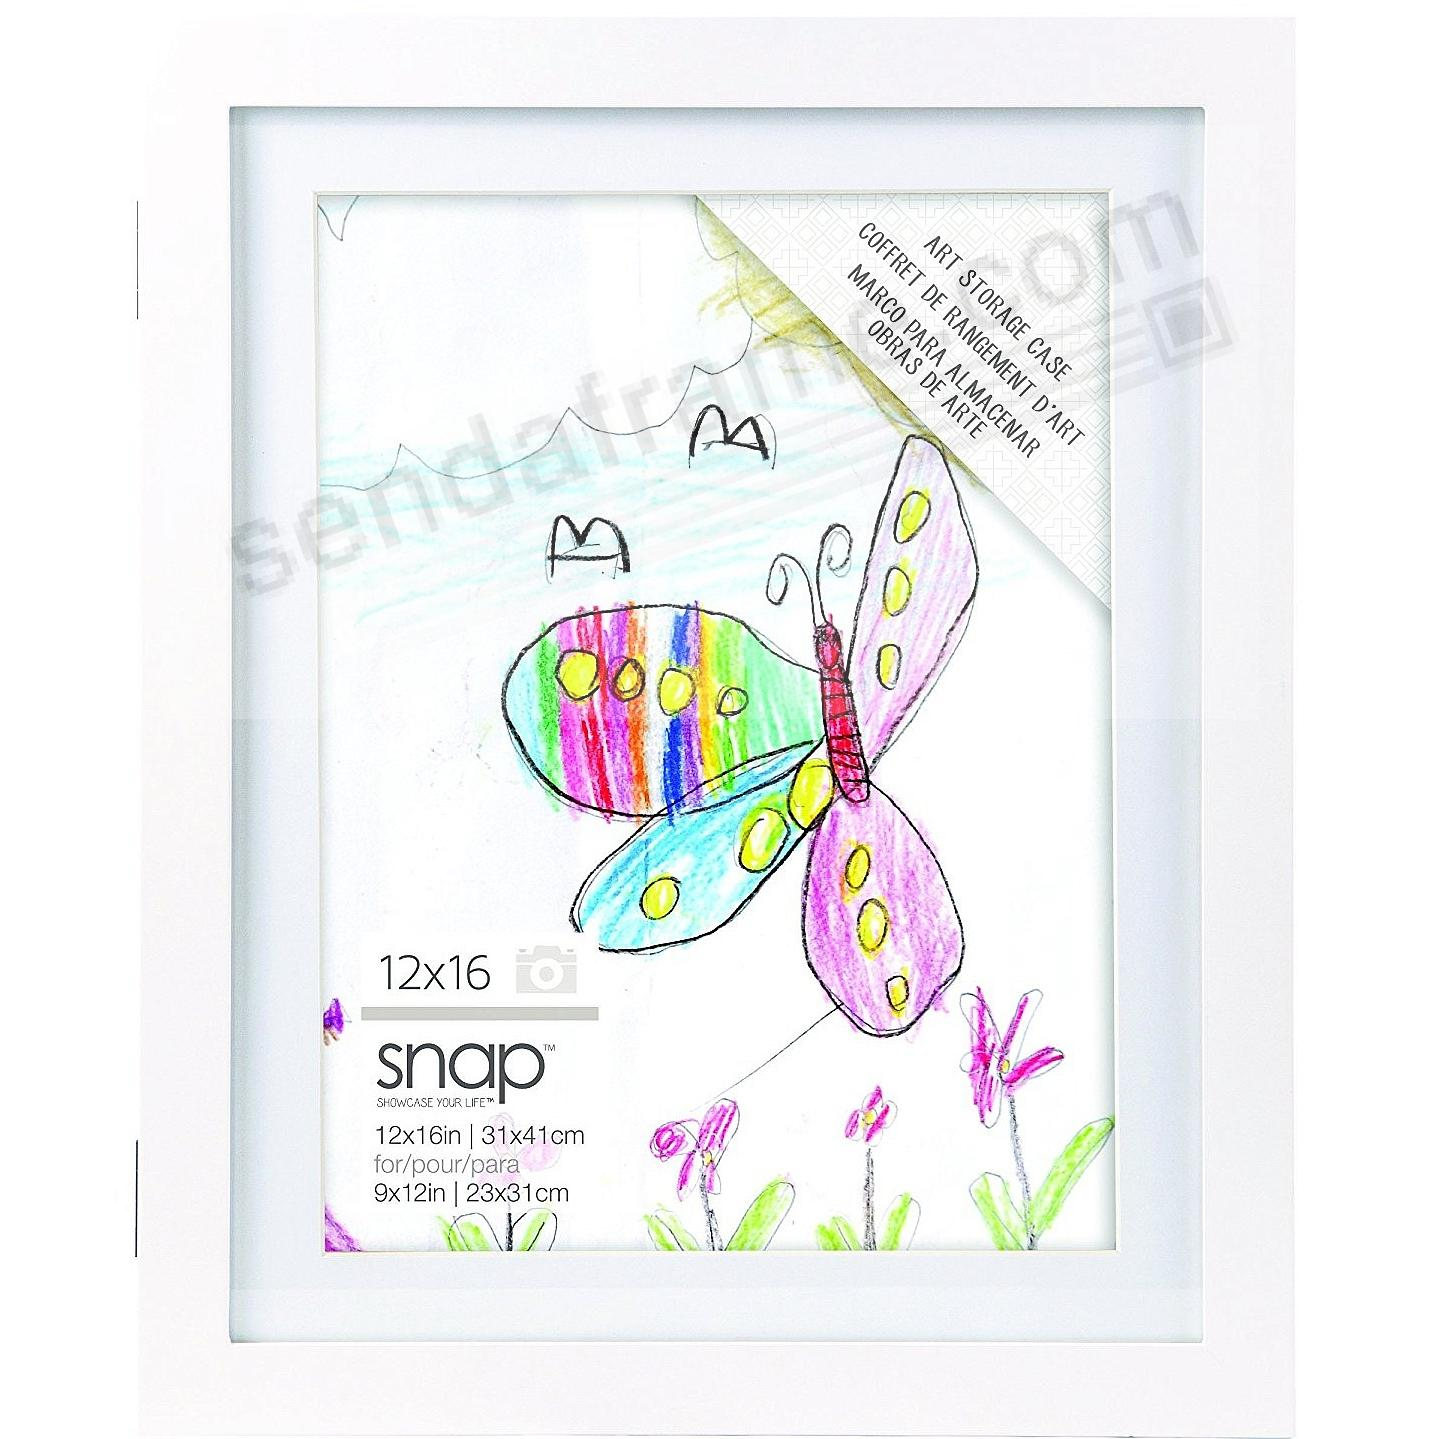 Art Display Case 13x16/11x14 White Wood frame by SNAP®